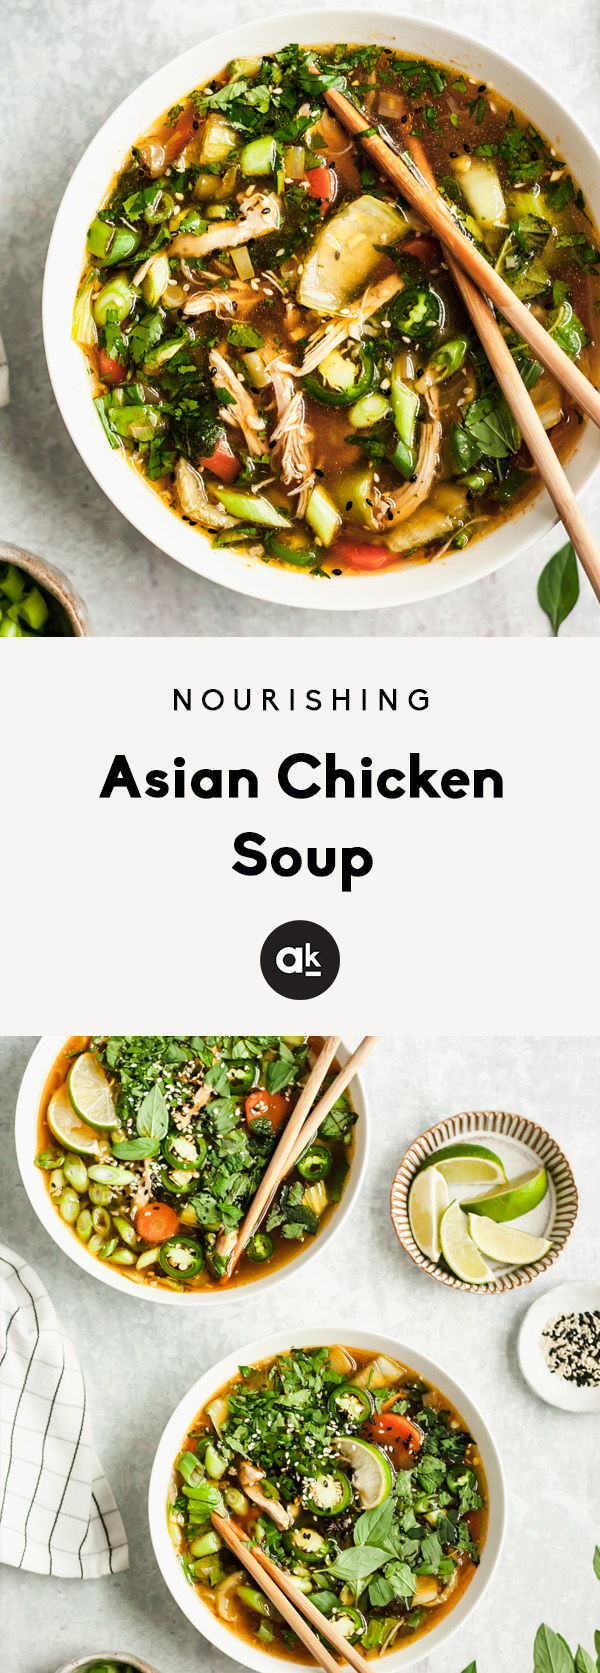 Nourishing asian chicken soup with bok choy, green onion, garlic, ginger, lemongrass and fresh herbs like cilantro, mint and basil. Fresh, flavorful and healthy!